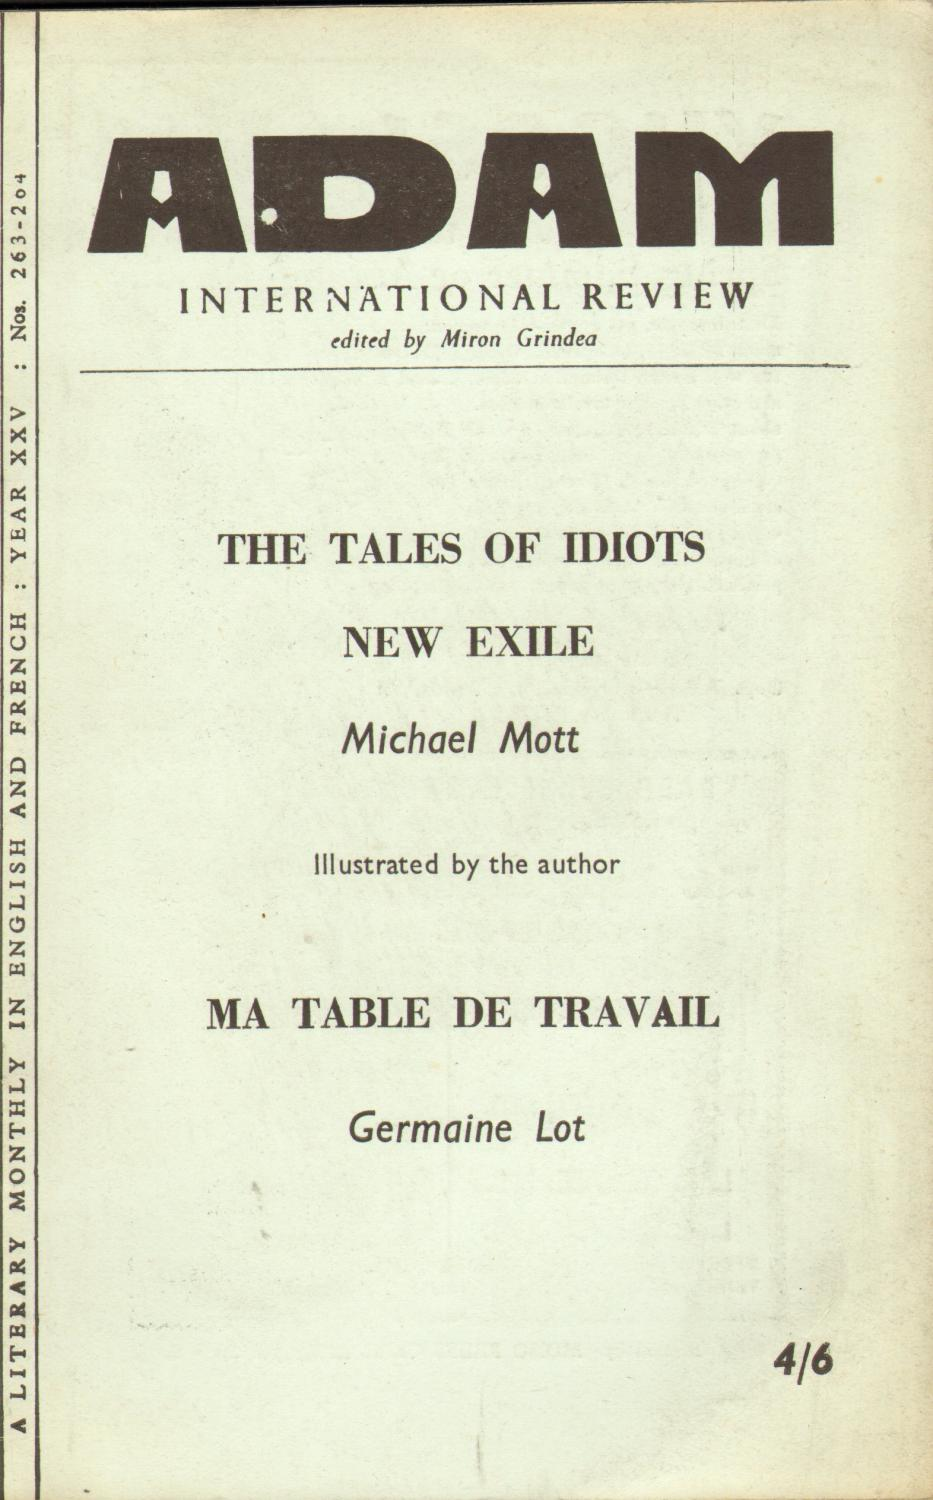 International Review. Year XXV. No. 263-264. The Tales of Idiots, New Exile - Michael Mott. ...